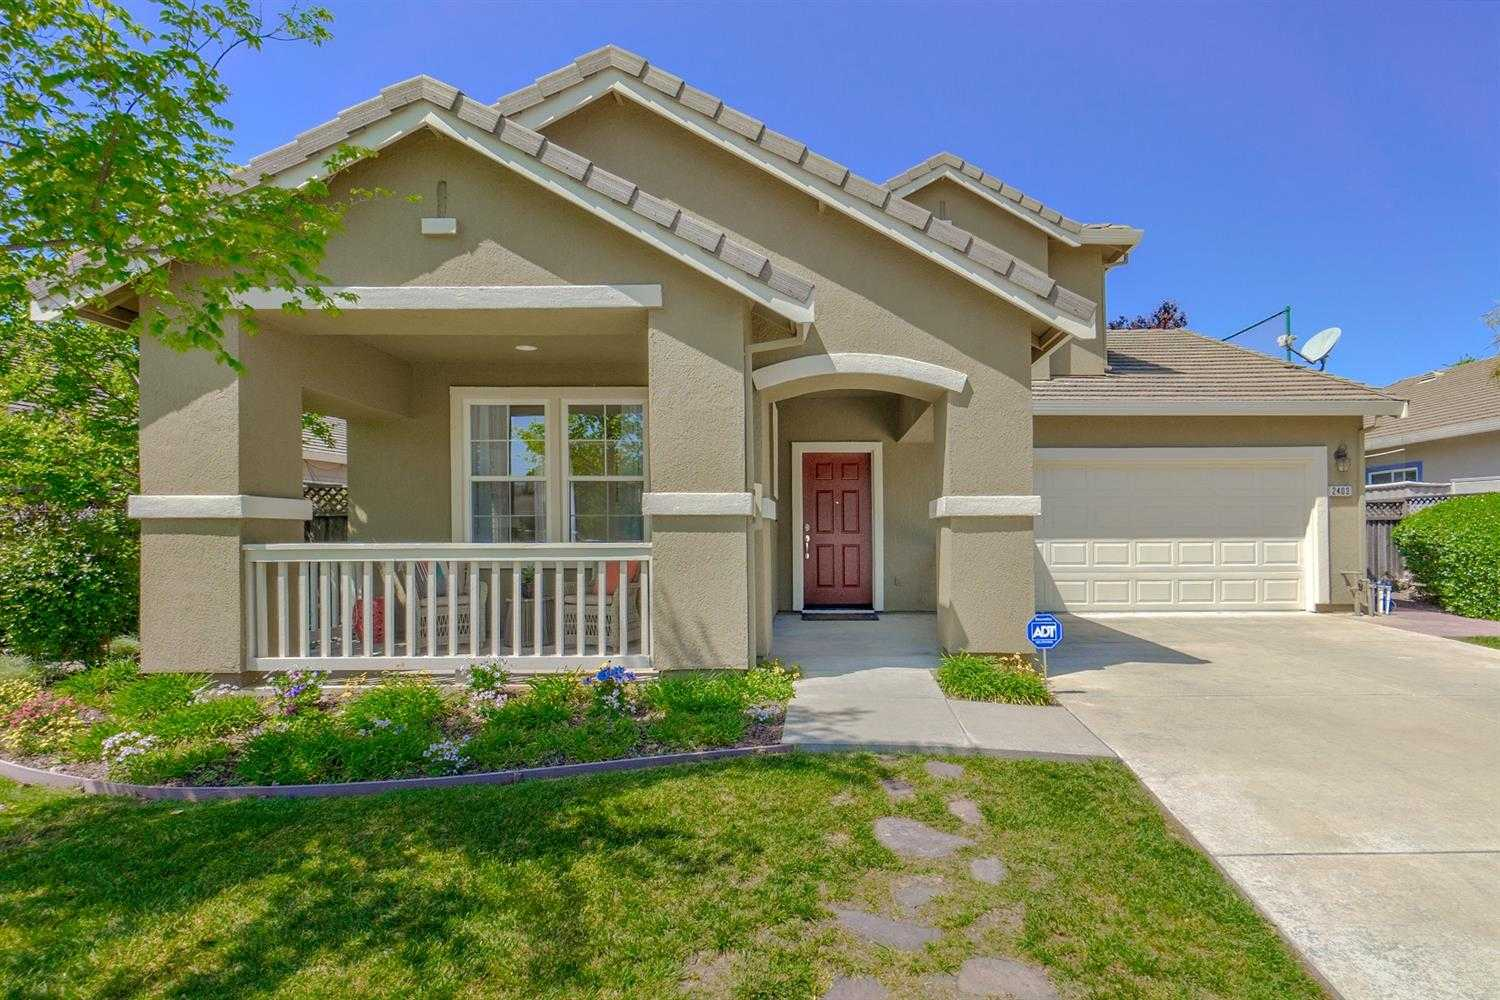 $905,000 - 5Br/3Ba -  for Sale in Davis